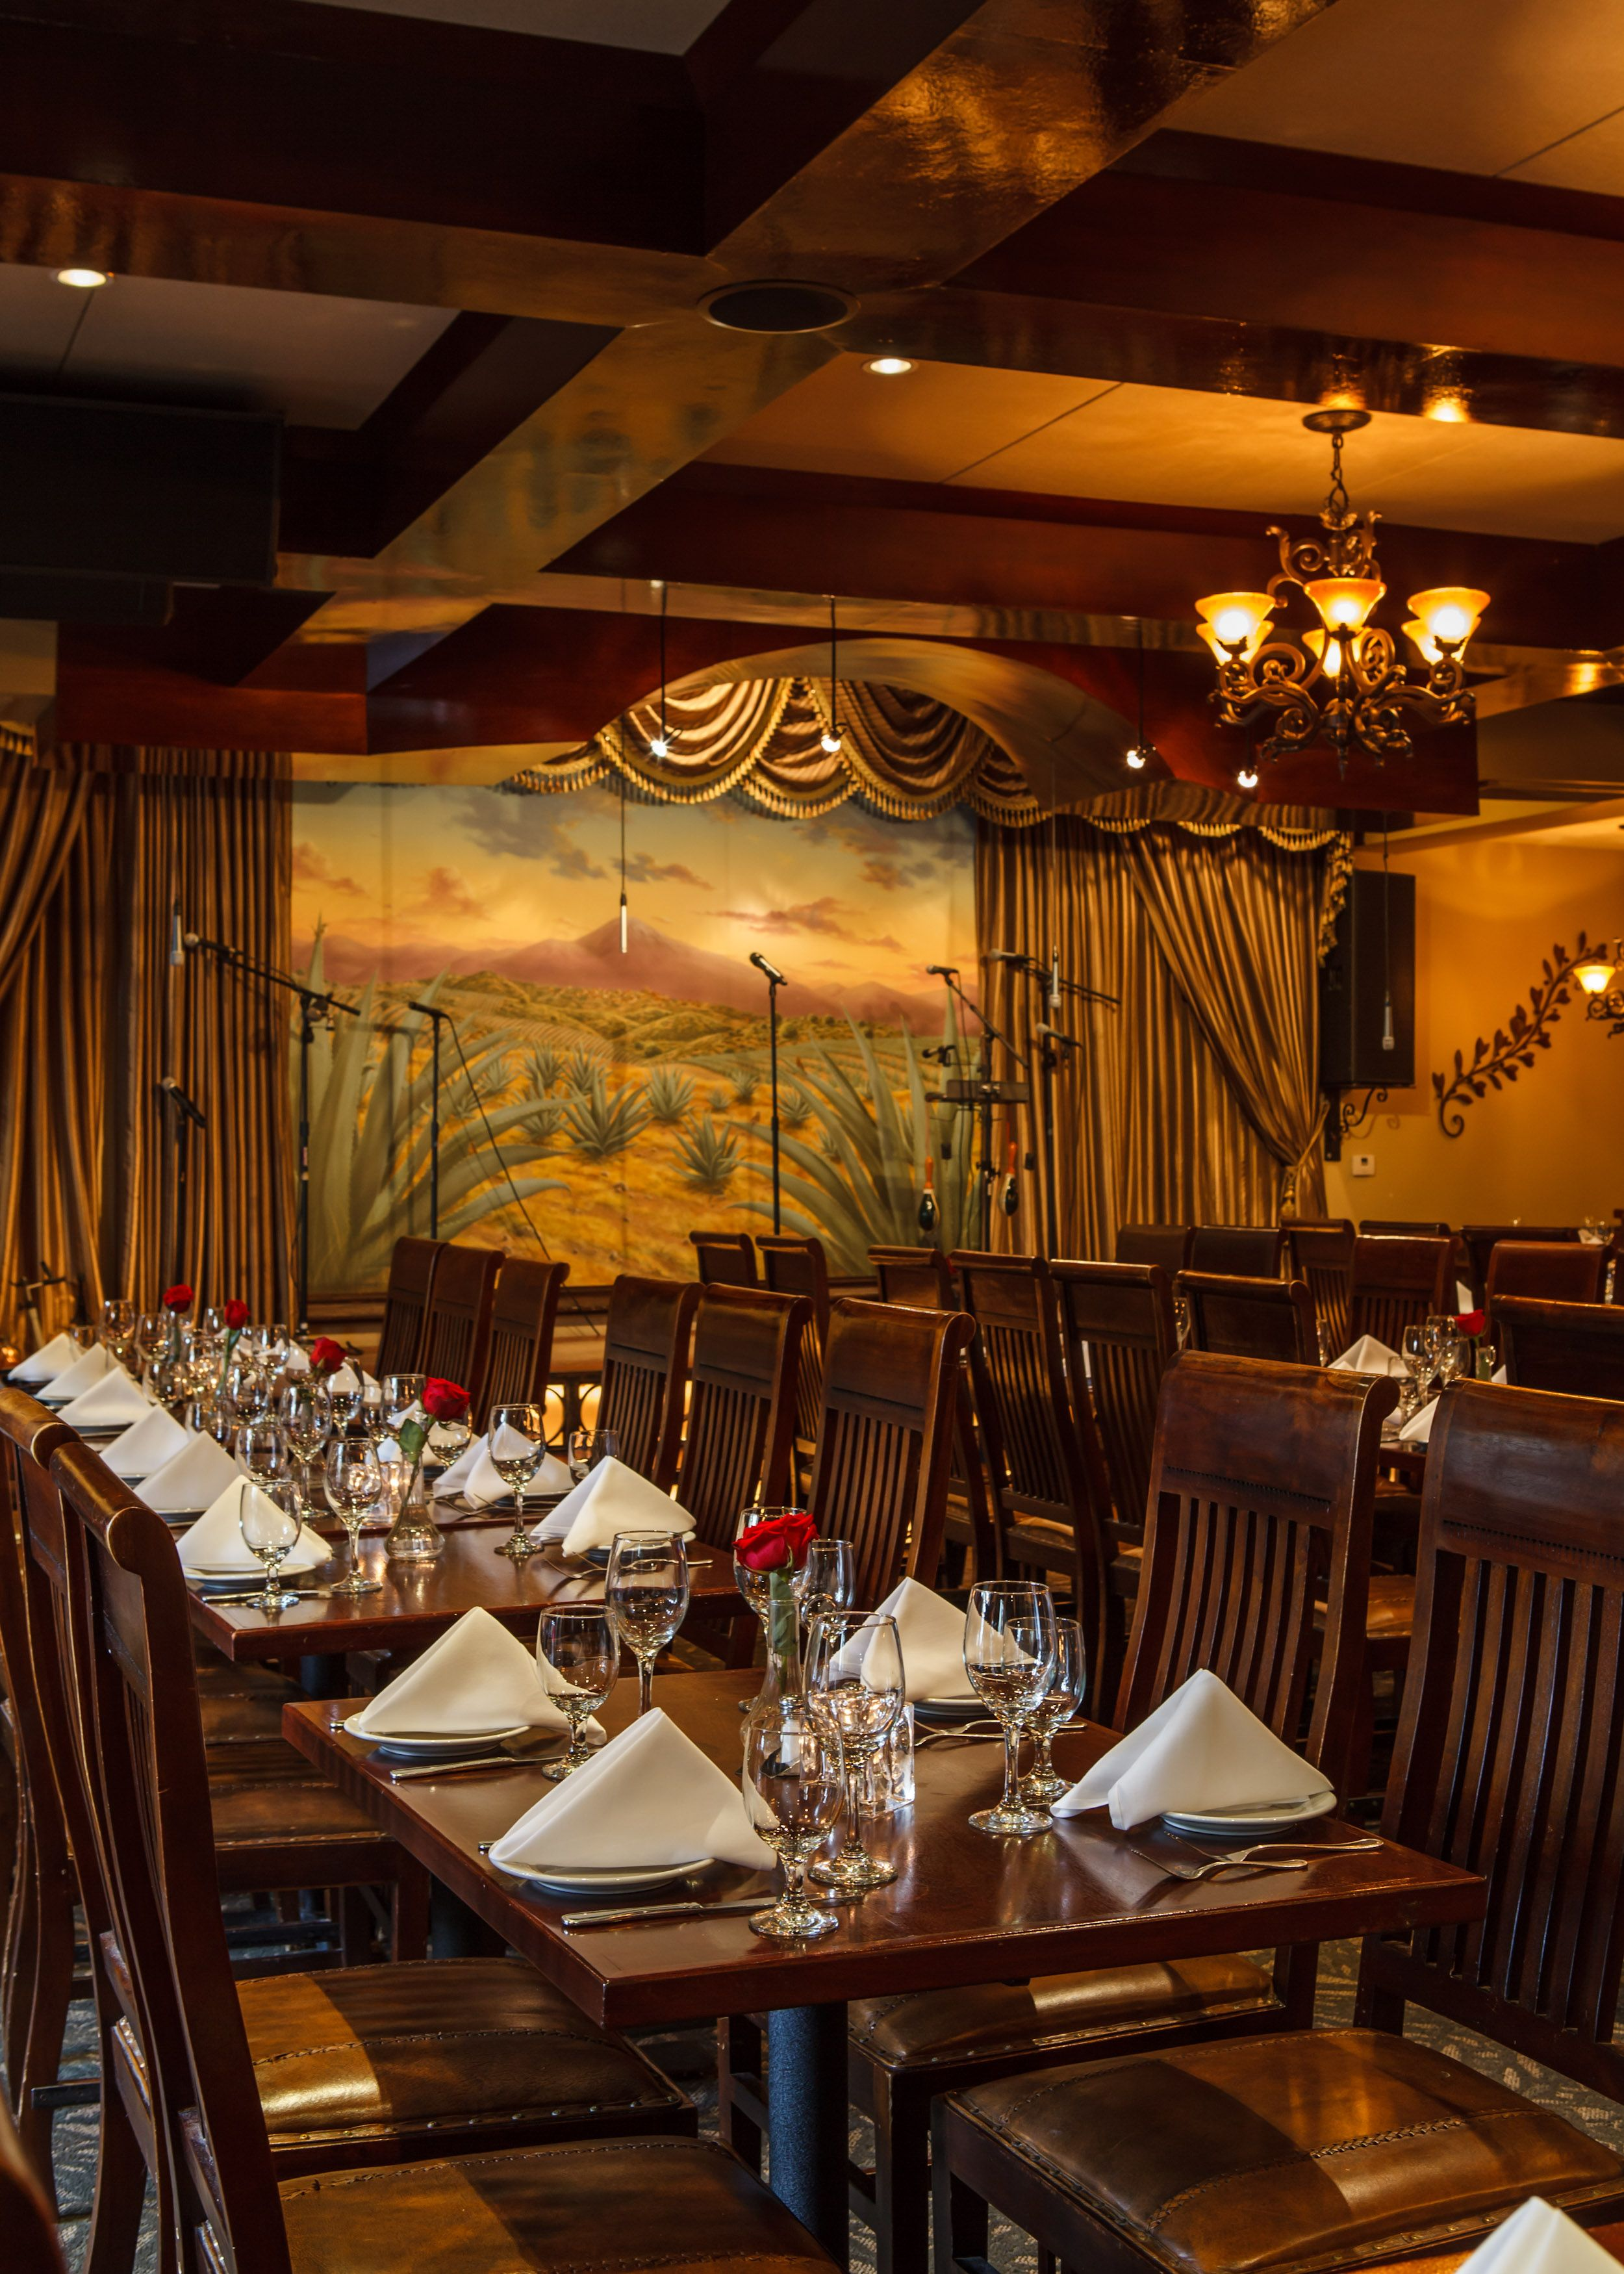 Casa Sanchez Mexican Restaurant 4500 S Centinela Ave Los Angeles Ca 90066 Www Casa Sanchez Com Restaurant Decor Mexican Restaurant Decor Cafe Restaurant